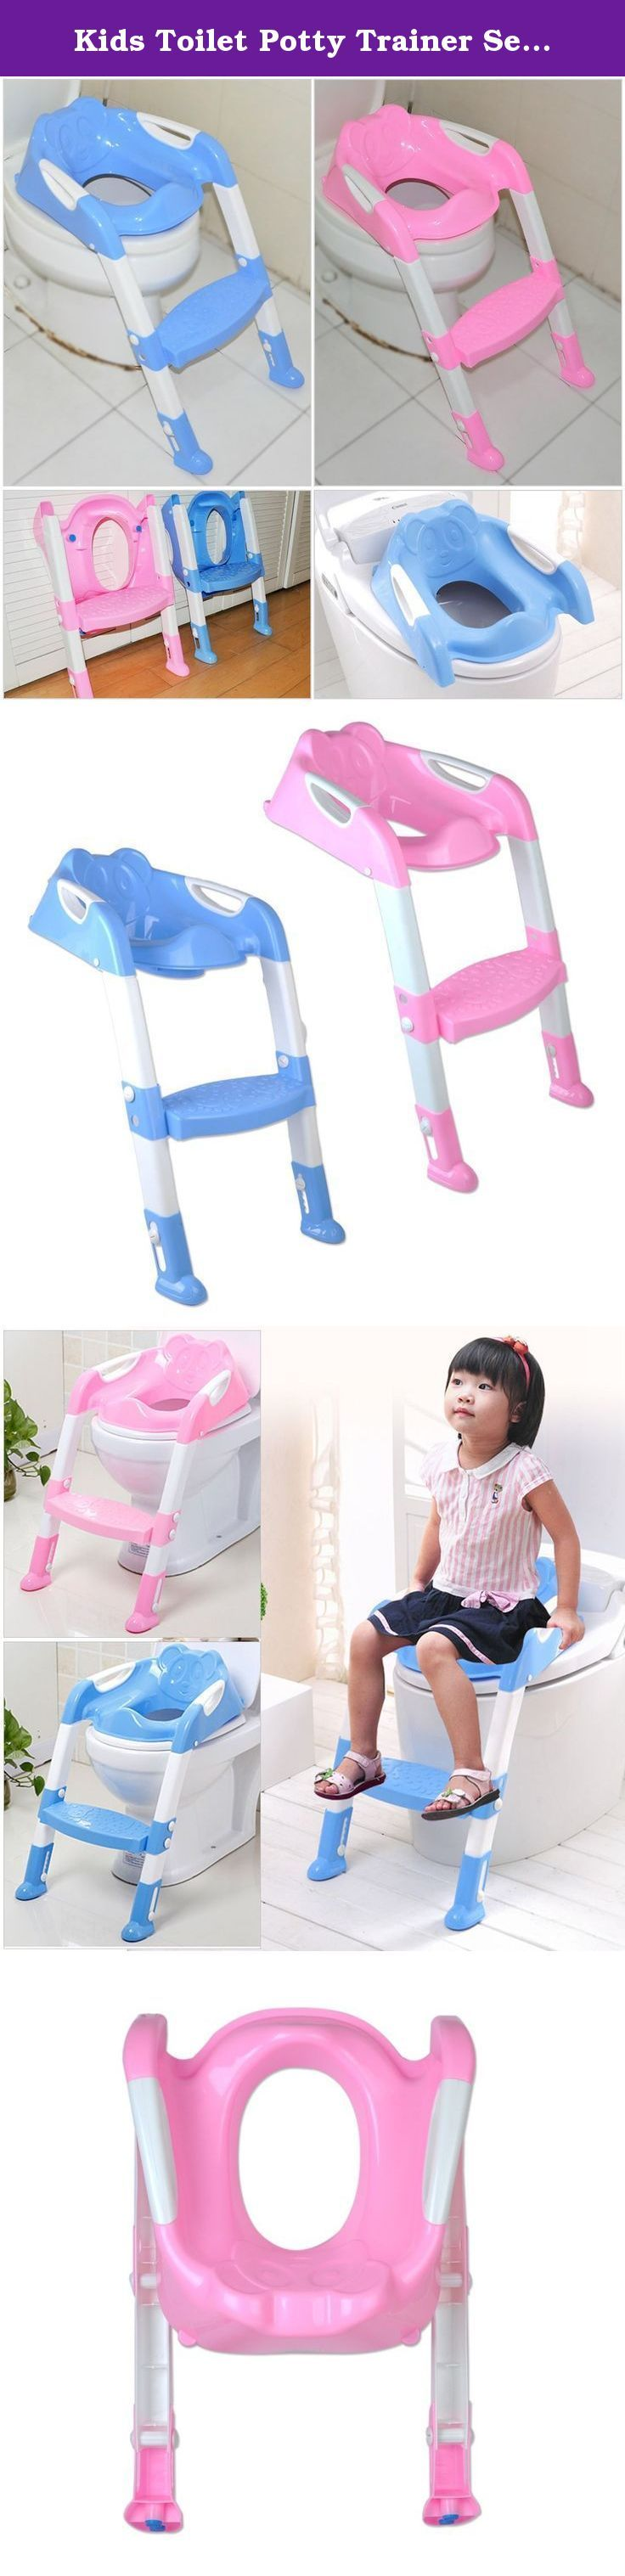 Kids Toilet Potty Trainer Seat Chair Toddler with Ladder Step up Training Stool-pink. Material:High quality of Polypropylene ;color:pink; Max Weight: 50kg ;Size:60x33cm Compatible: Fit for 6 months or older baby, less than 50kg Item included: Kid Toilet Training Chair x 1 Seat handles on either side for safety Seat attaches to the toilet seat 2 point height adjustable step with adjustable height feet Seat cushion and ladder feet cushion are designed with non-slip pad, effectively prevent…